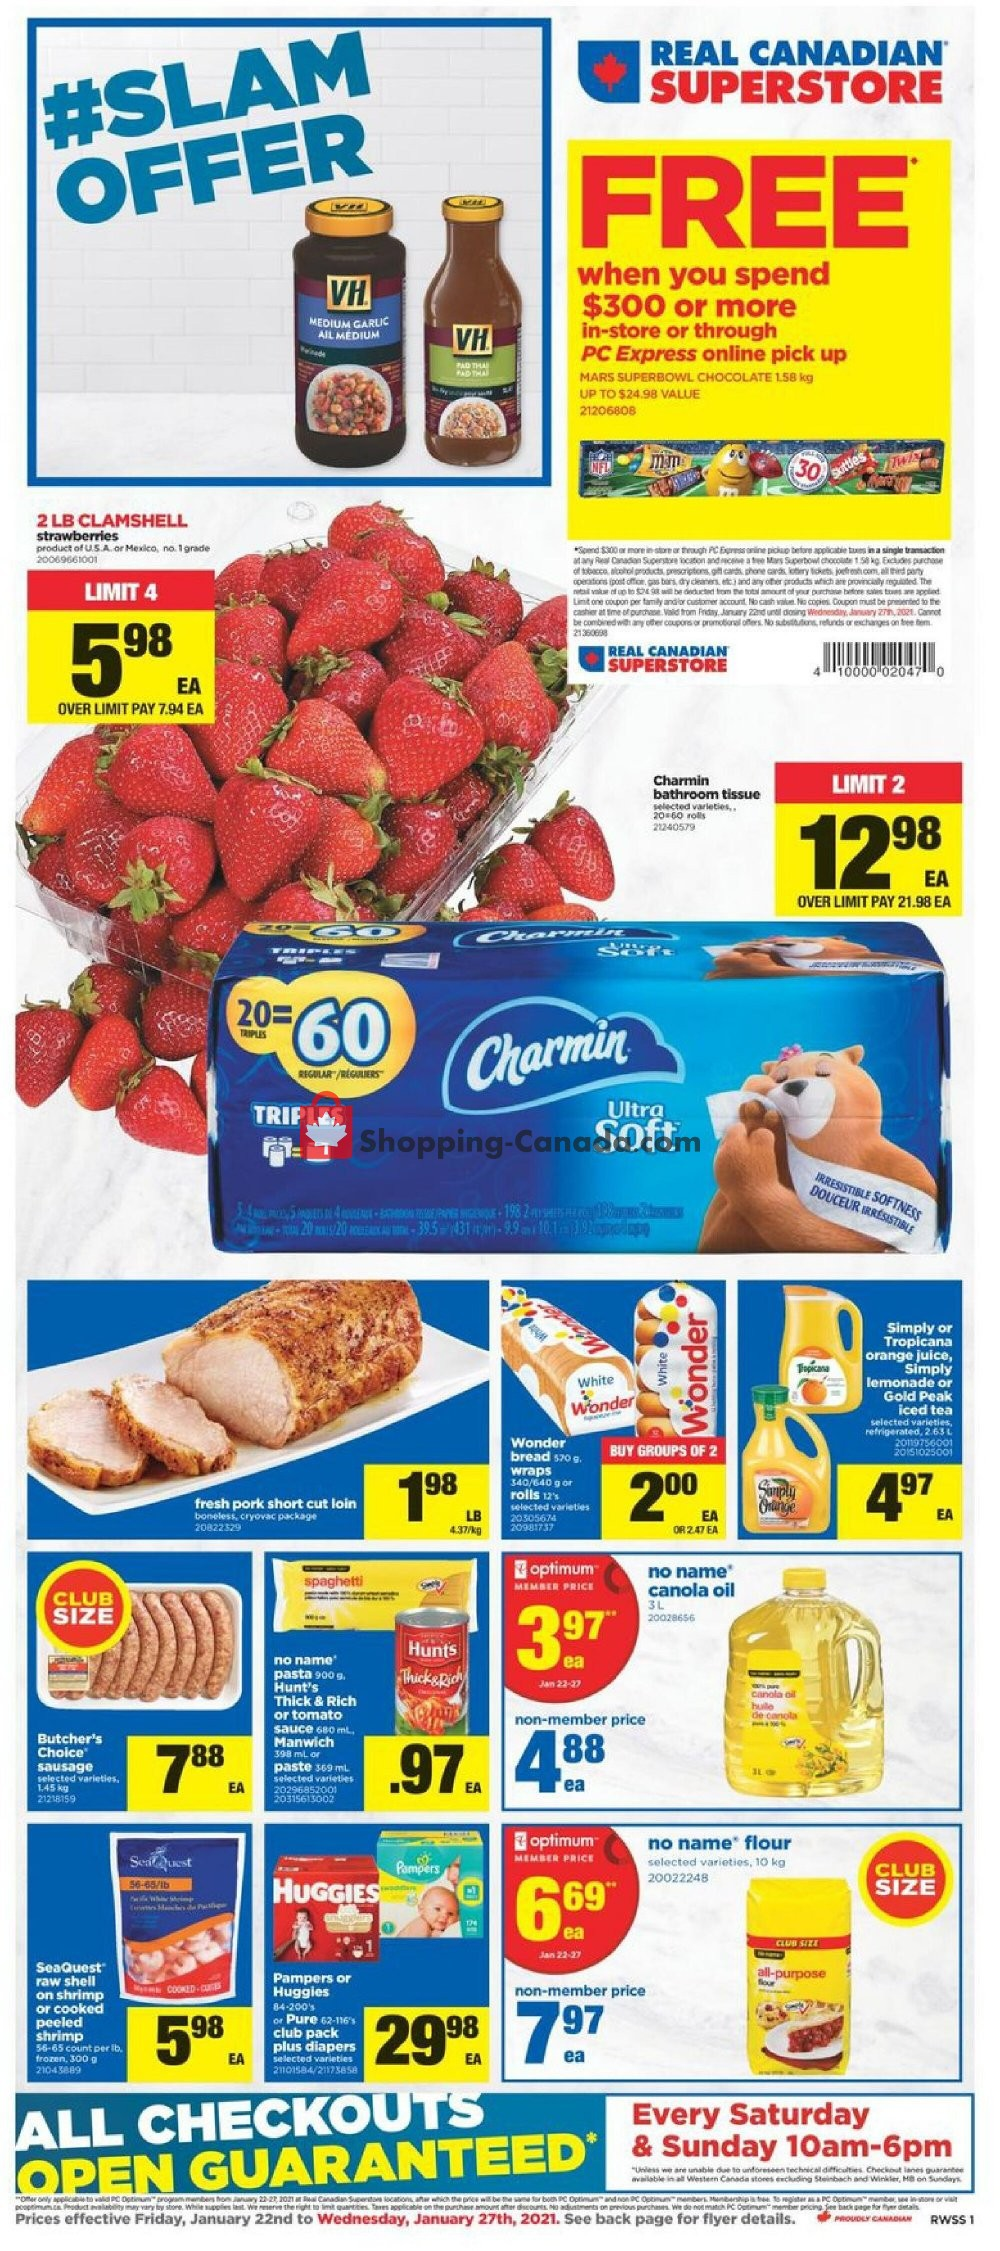 Flyer Real Canadian Superstore Canada - from Friday January 22, 2021 to Wednesday January 27, 2021